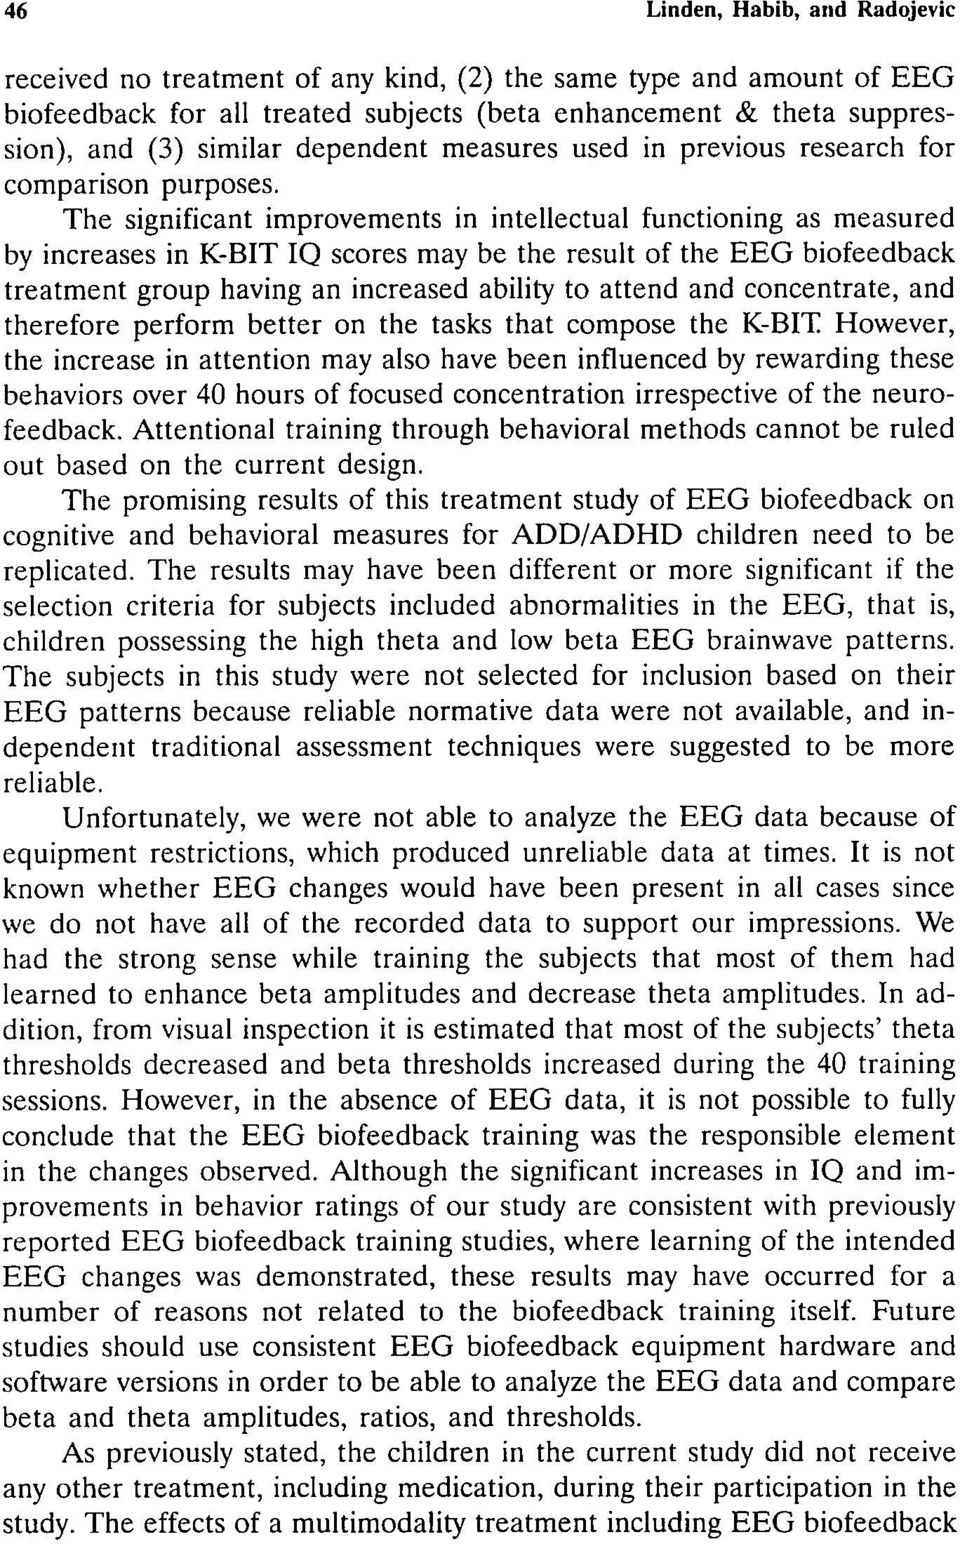 The significant improvements in intellectual functioning as measured by increases in K-BIT IQ scores may be the result of the EEG biofeedback treatment group having an increased ability to attend and